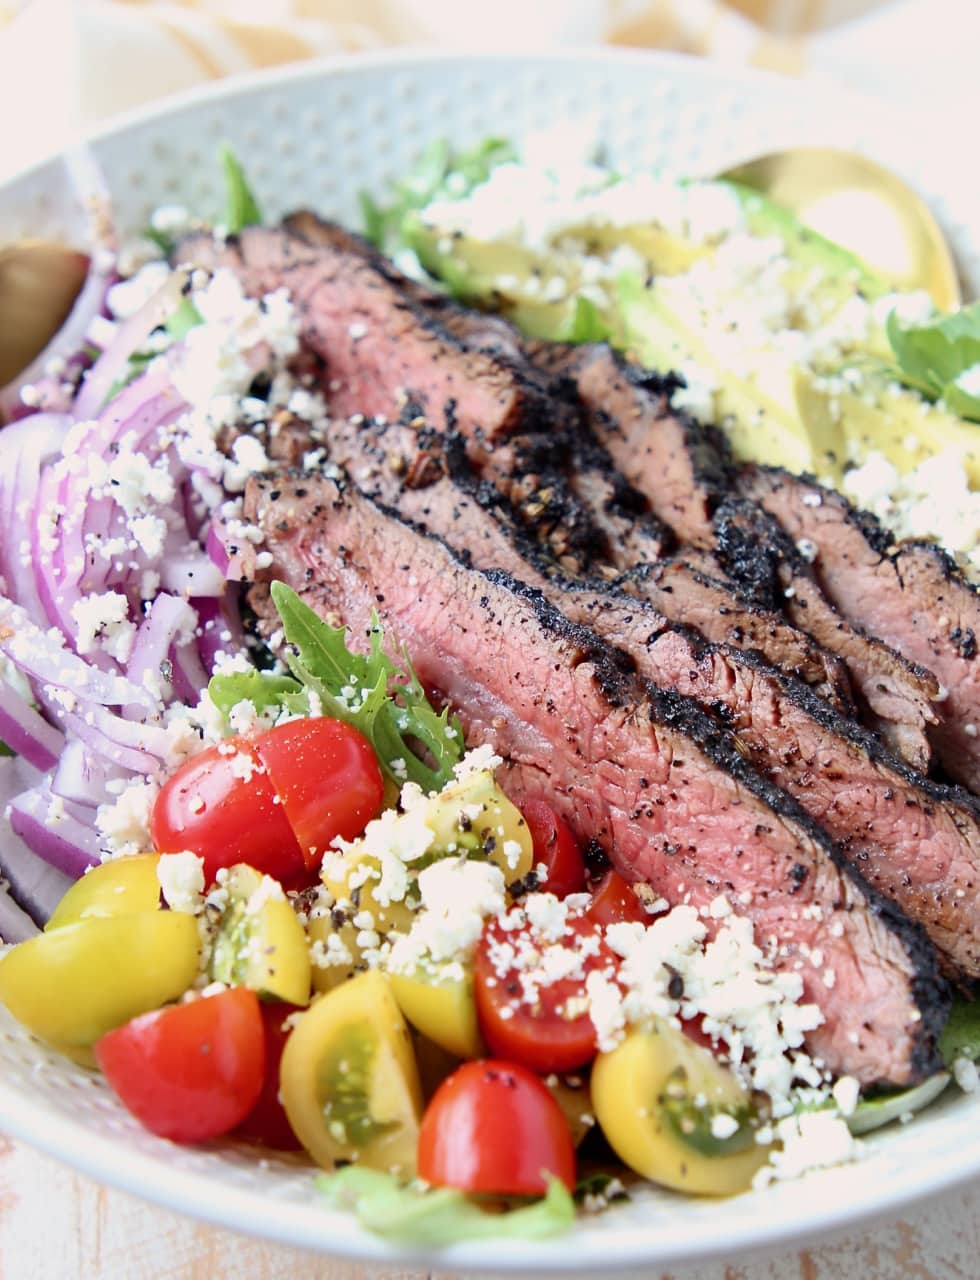 Sliced steak on a salad with cherry tomatoes, onions and goat cheese